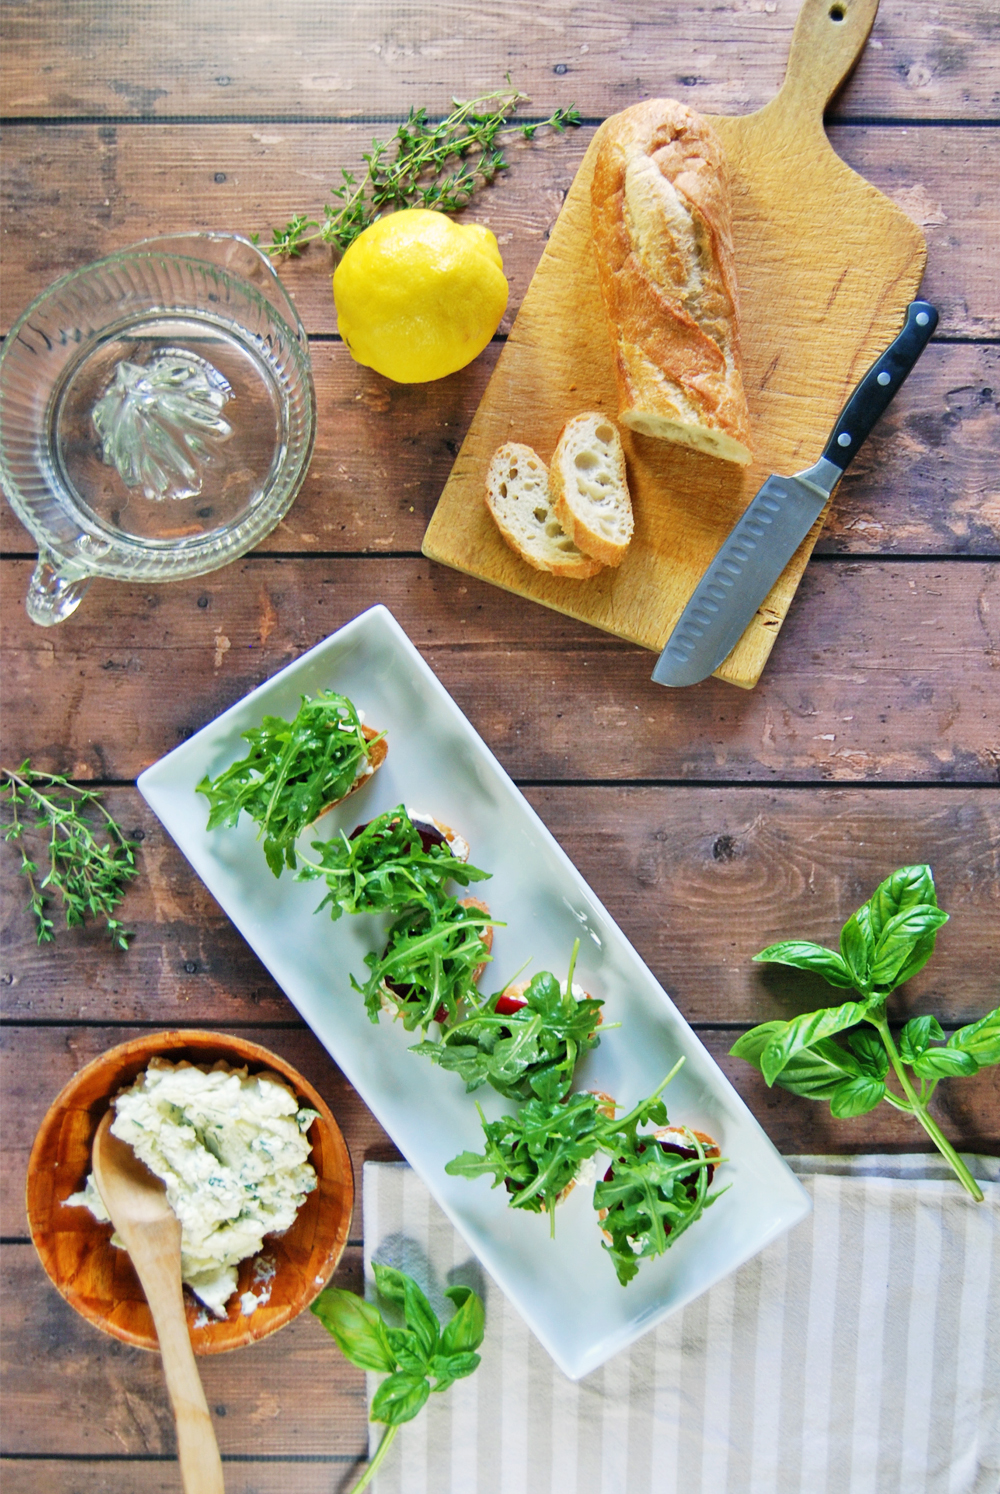 Herbed Goat Cheese Crostini with Roasted Beets and Arugula   The Charming Detroiter